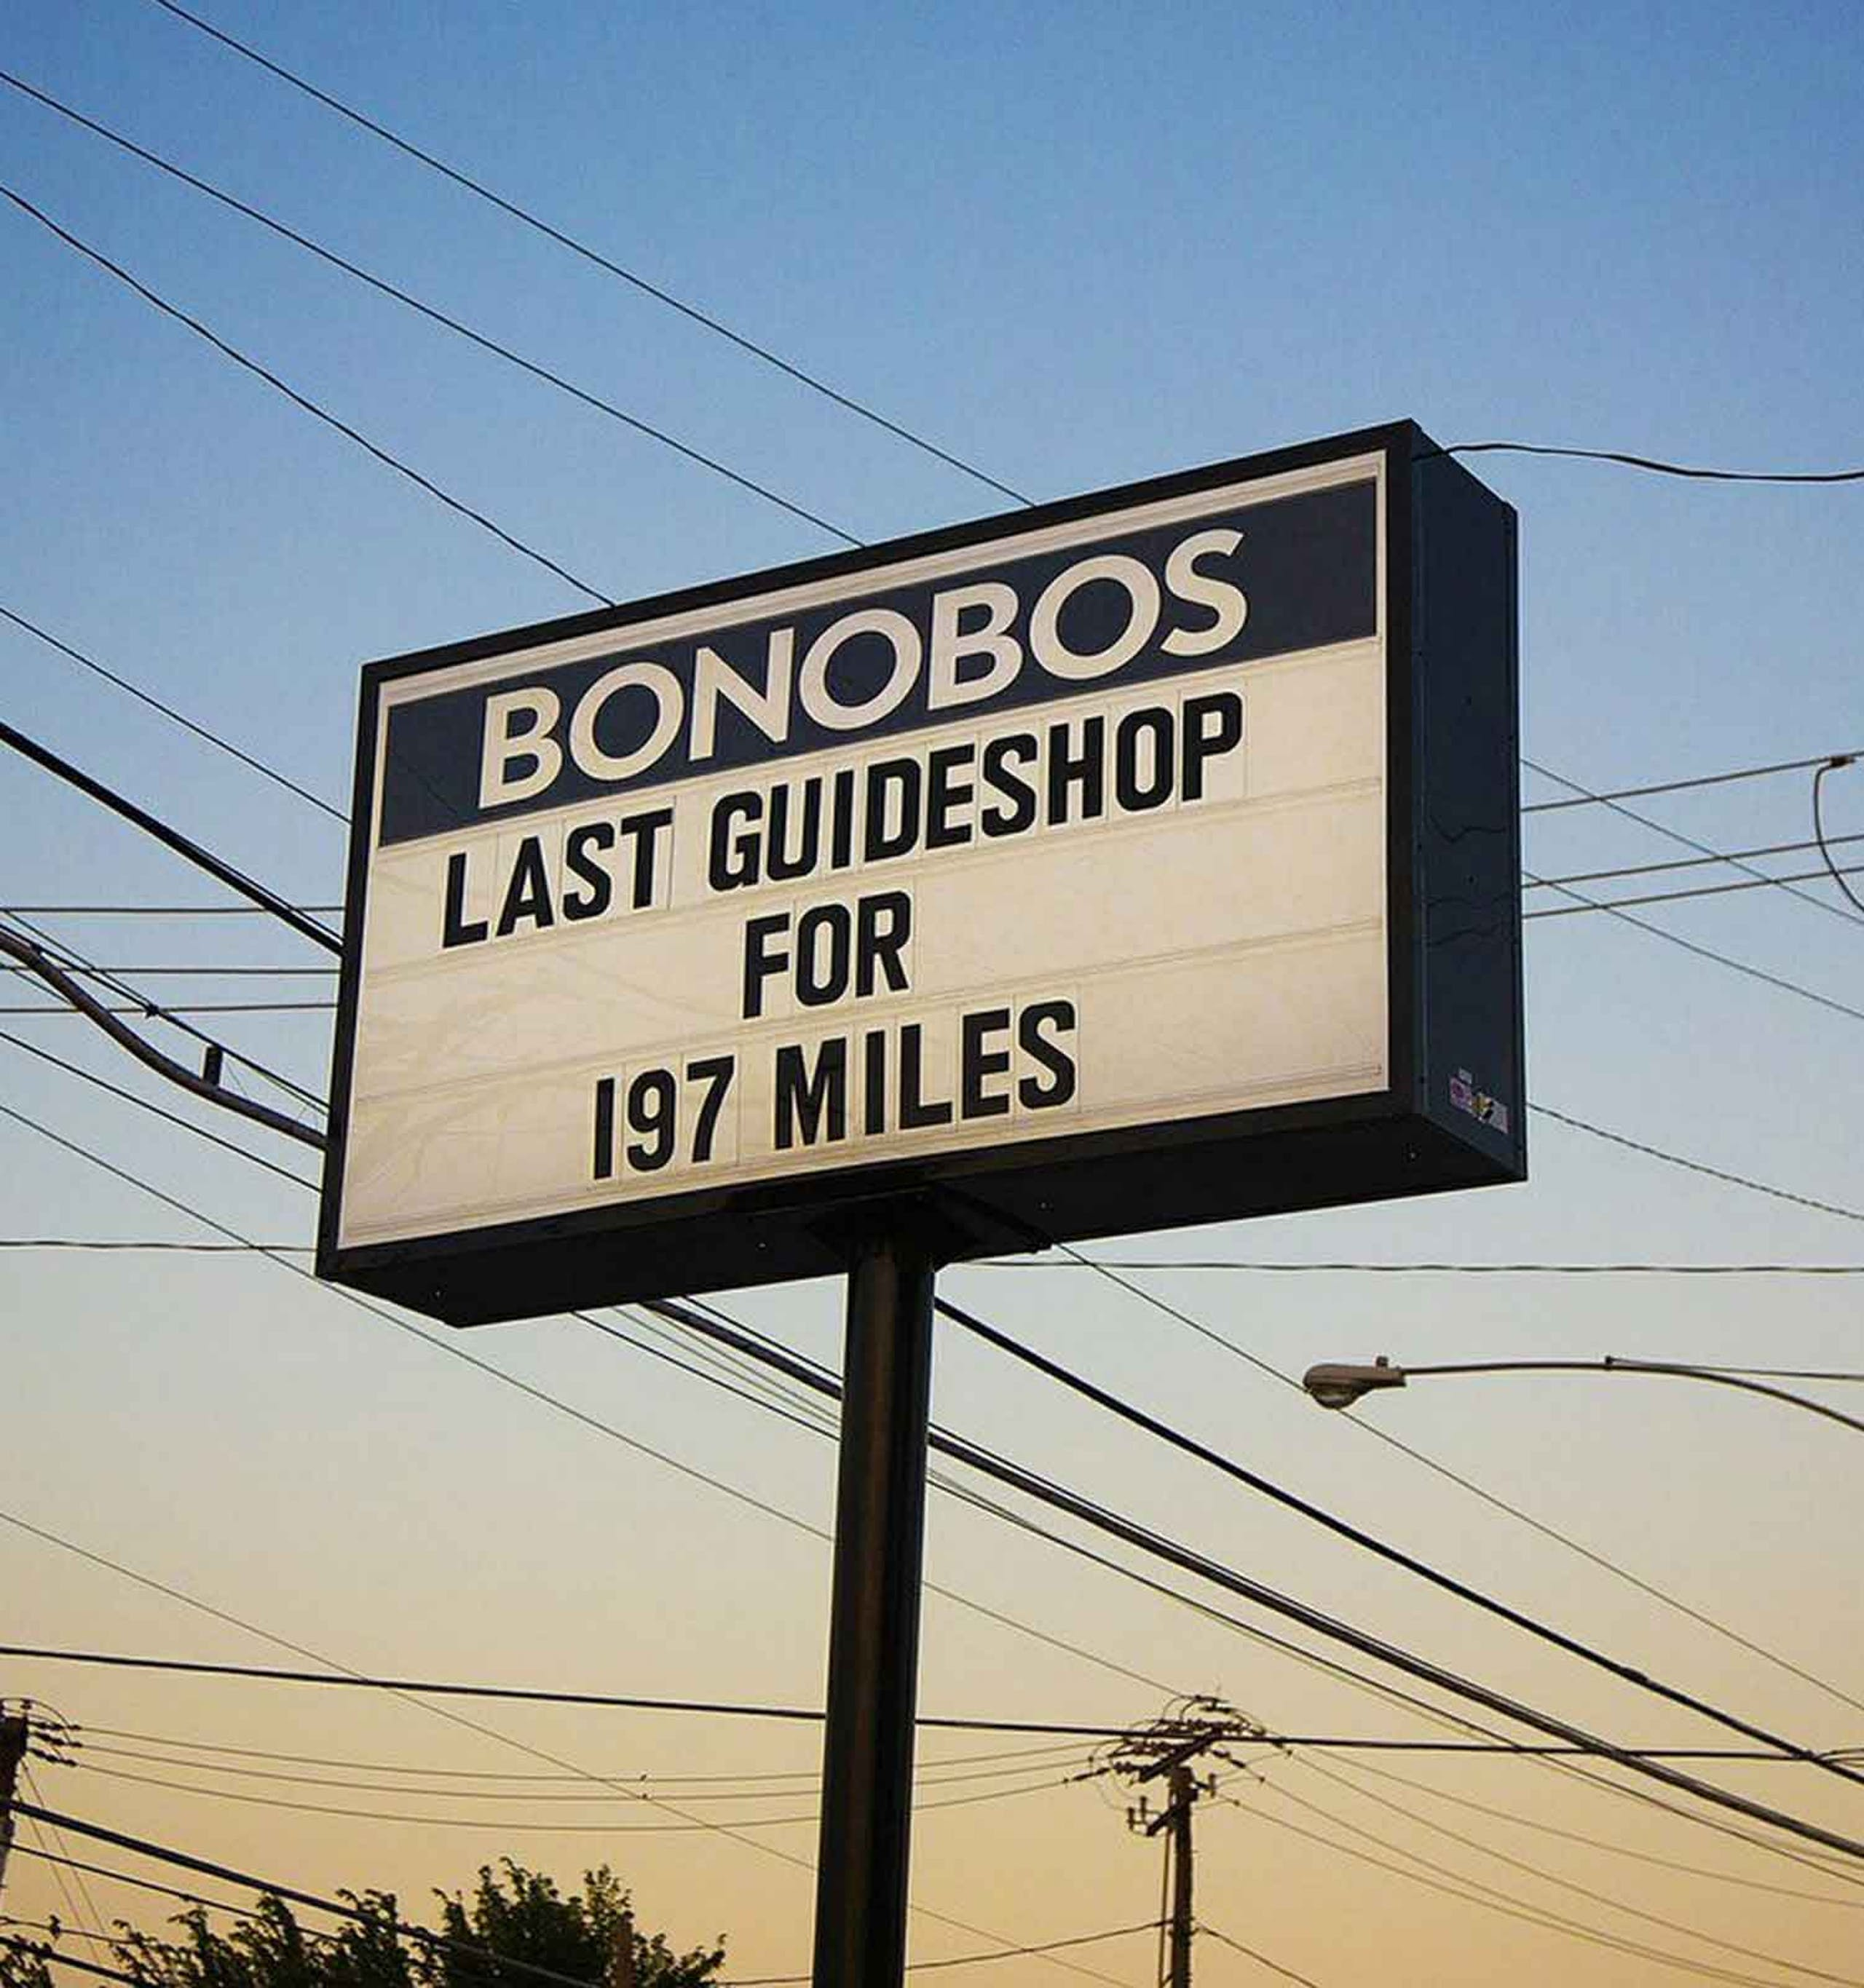 Image of billboard, text reads Bonobos, last guideshop for 197 miles